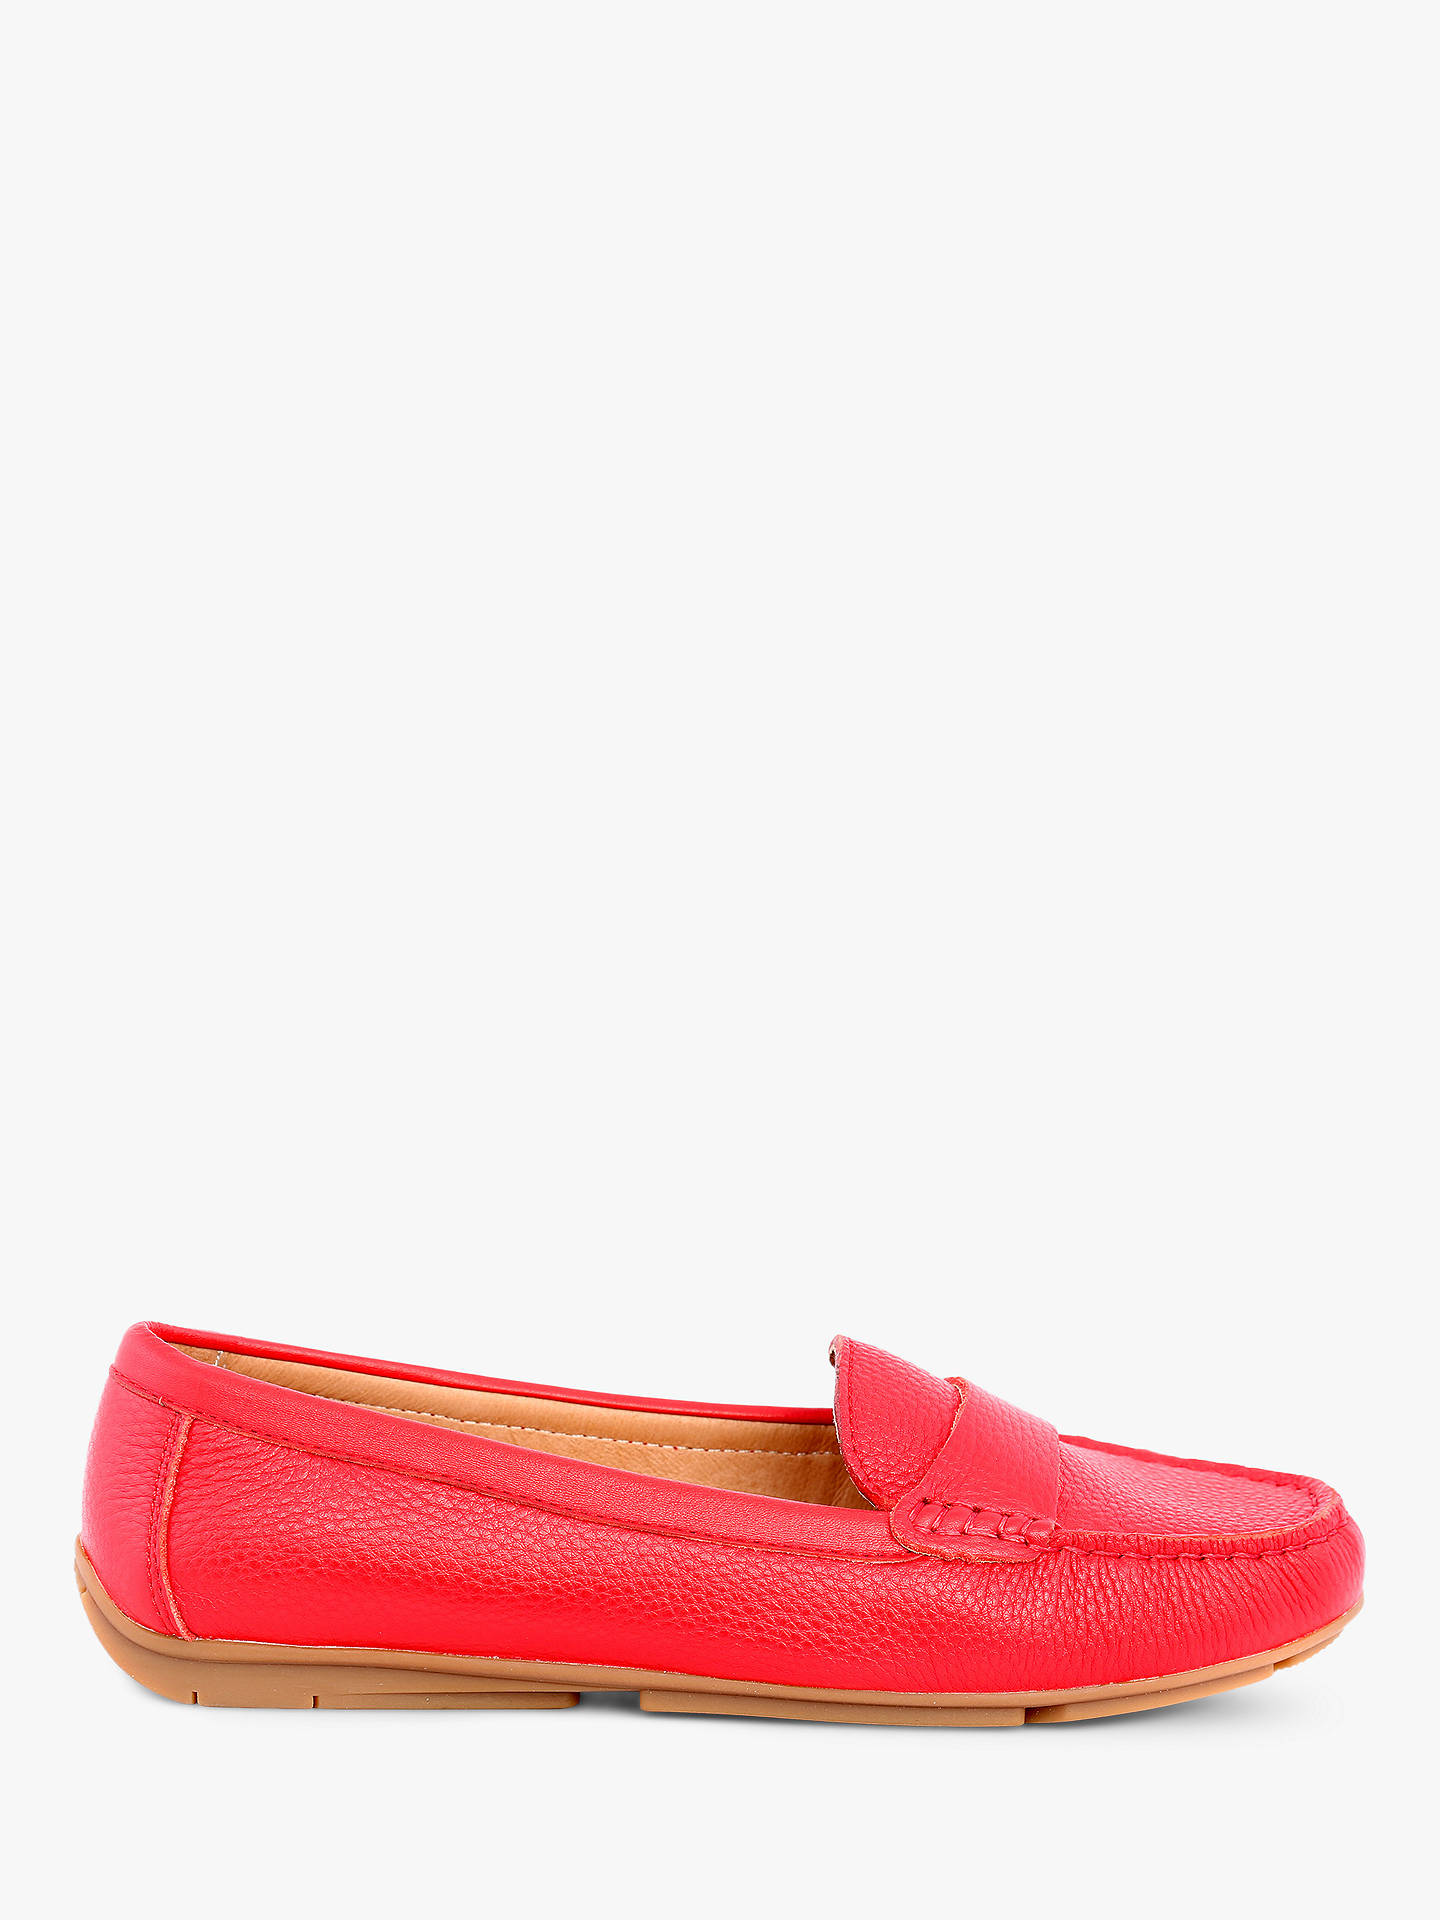 Buy Josef Seibel Elina 02 Classic Moccasins, Red Leather, 3 Online at johnlewis.com